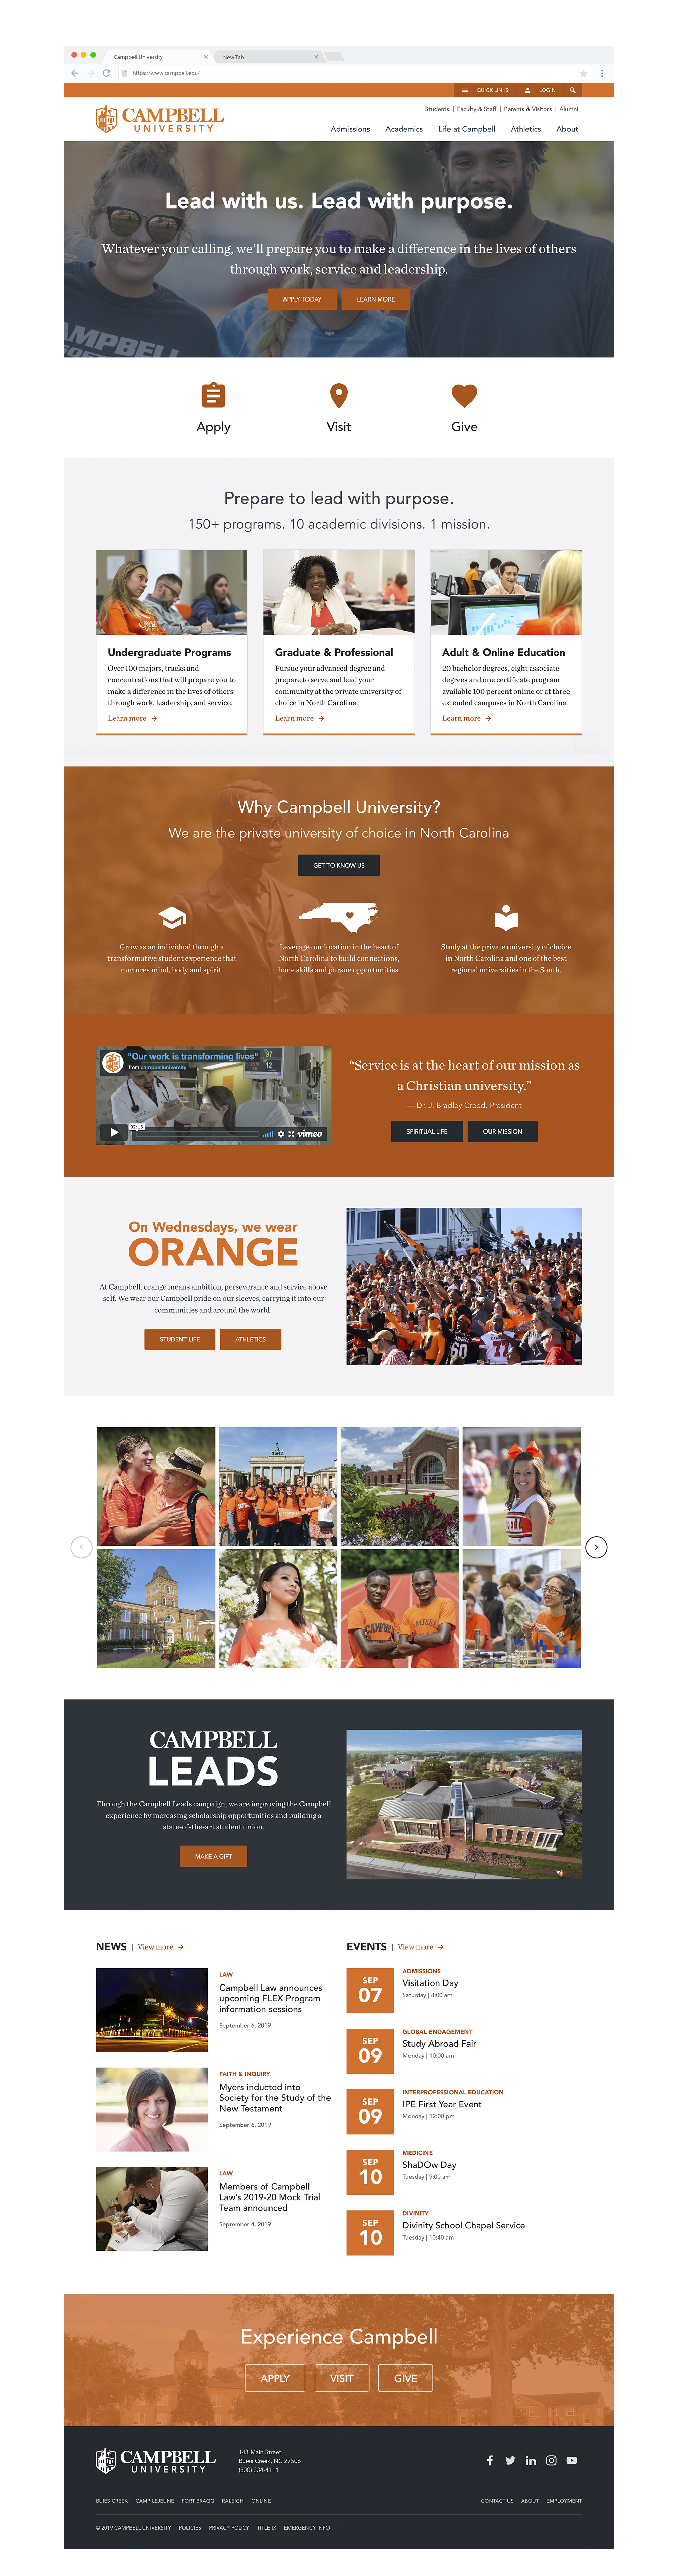 campbell-homepage-browser-mockup-2019-09.png